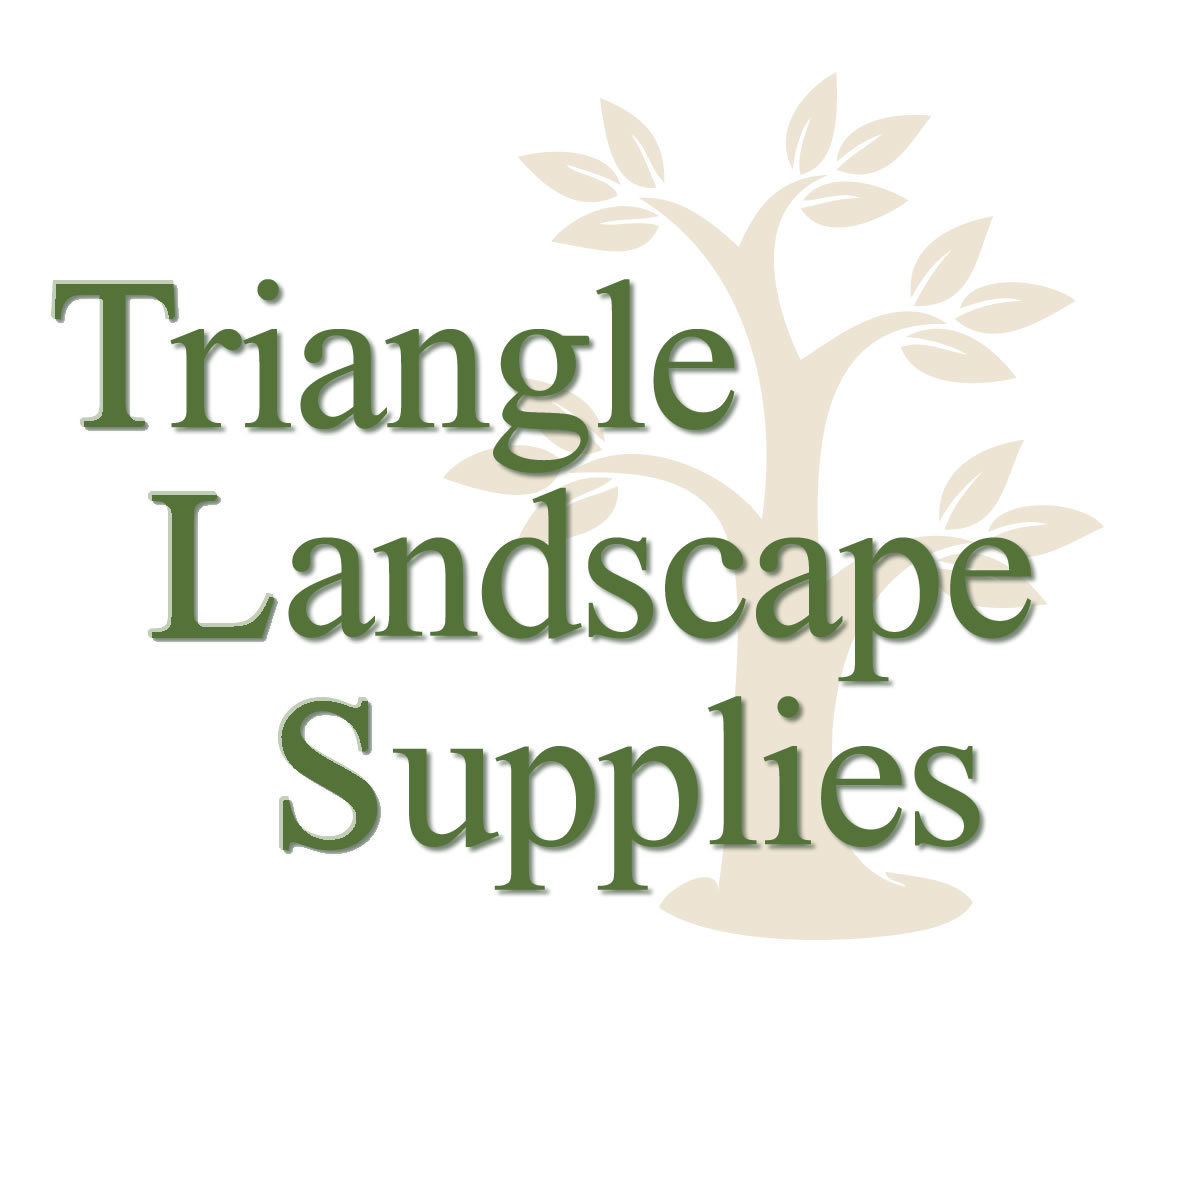 Triangle Landscape Supplies, Raleigh - Raleigh, NC - Landscape Architects & Design